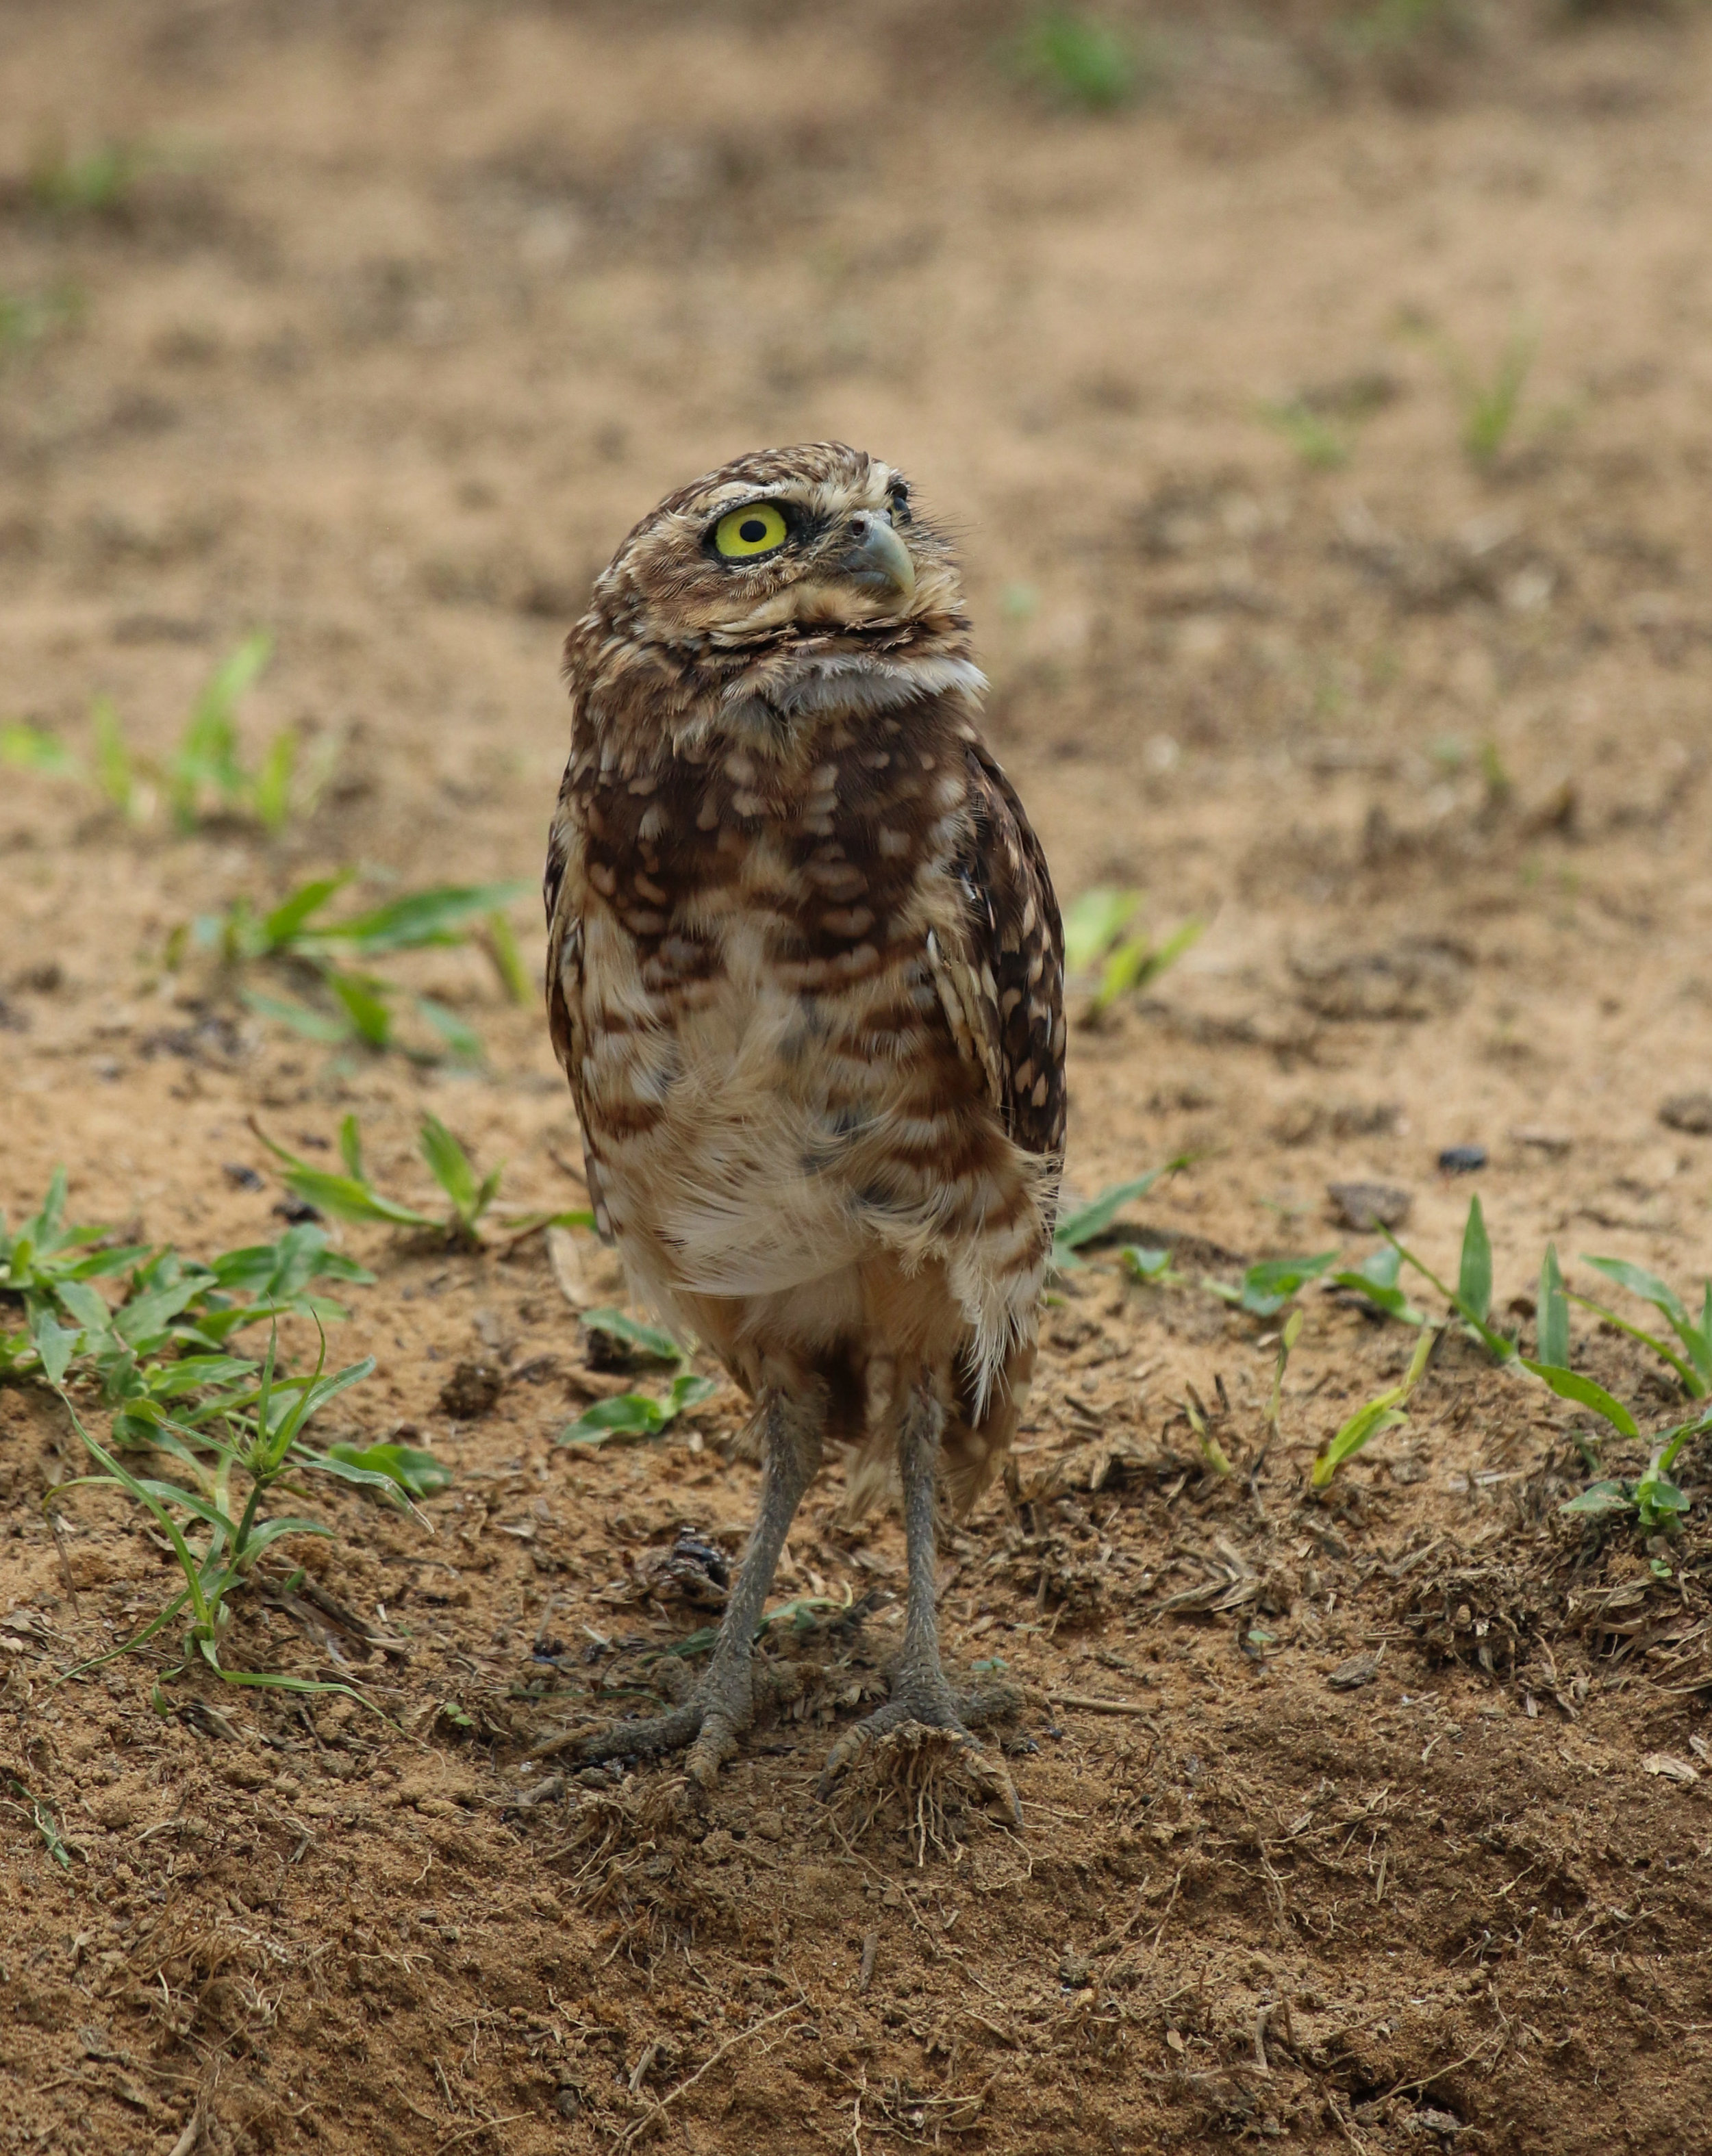 Burrowing owl staring up Llanos Colombia by Millie Kerr-1.jpg